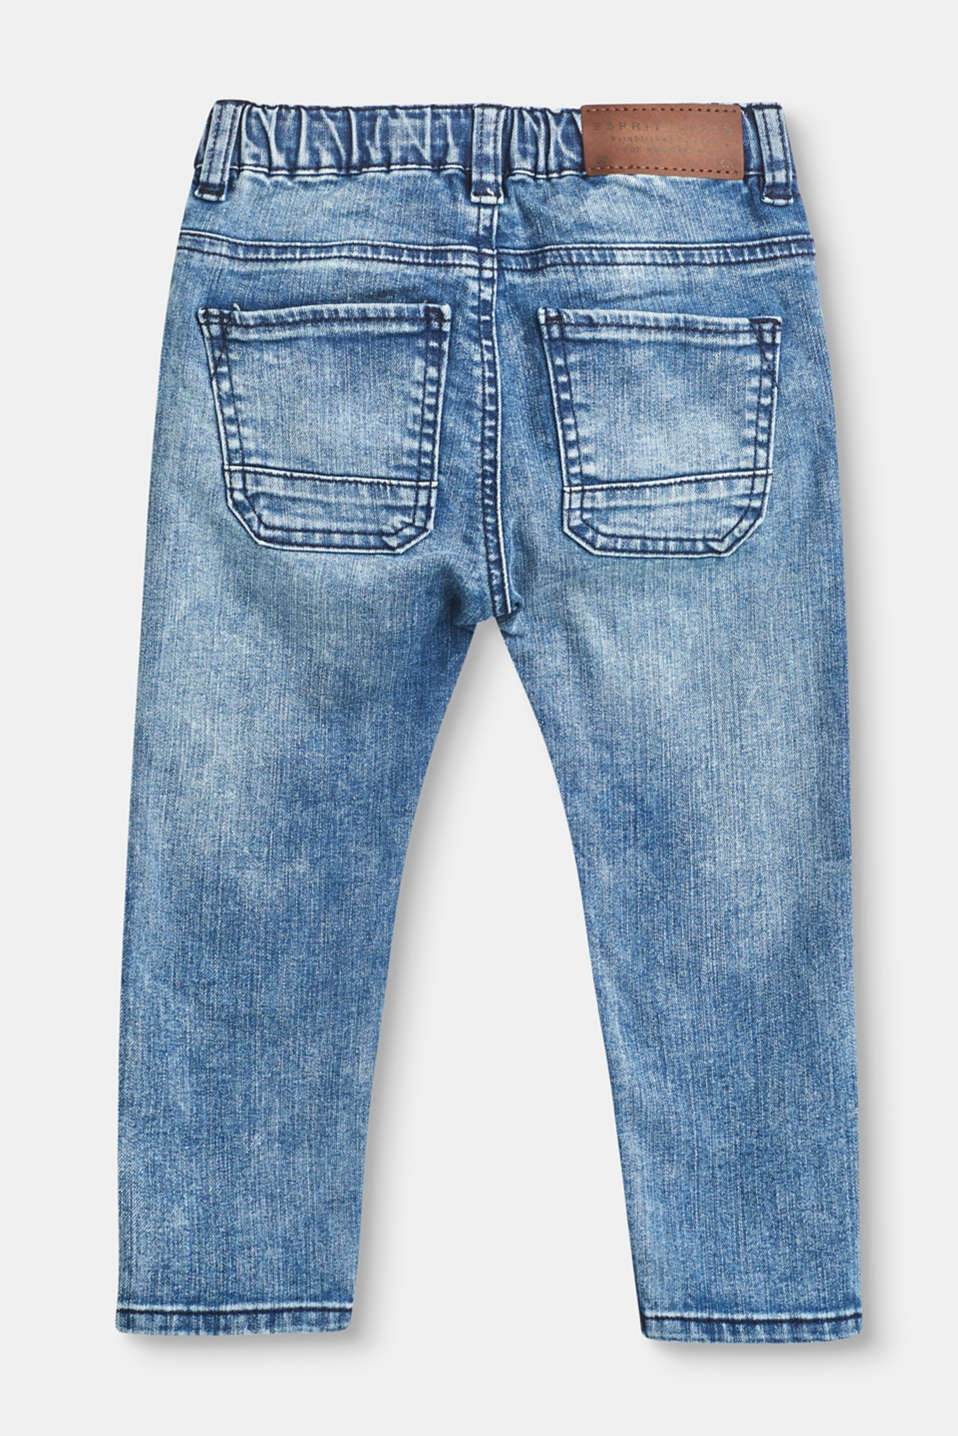 Soft stretch jeans, elasticated waistband